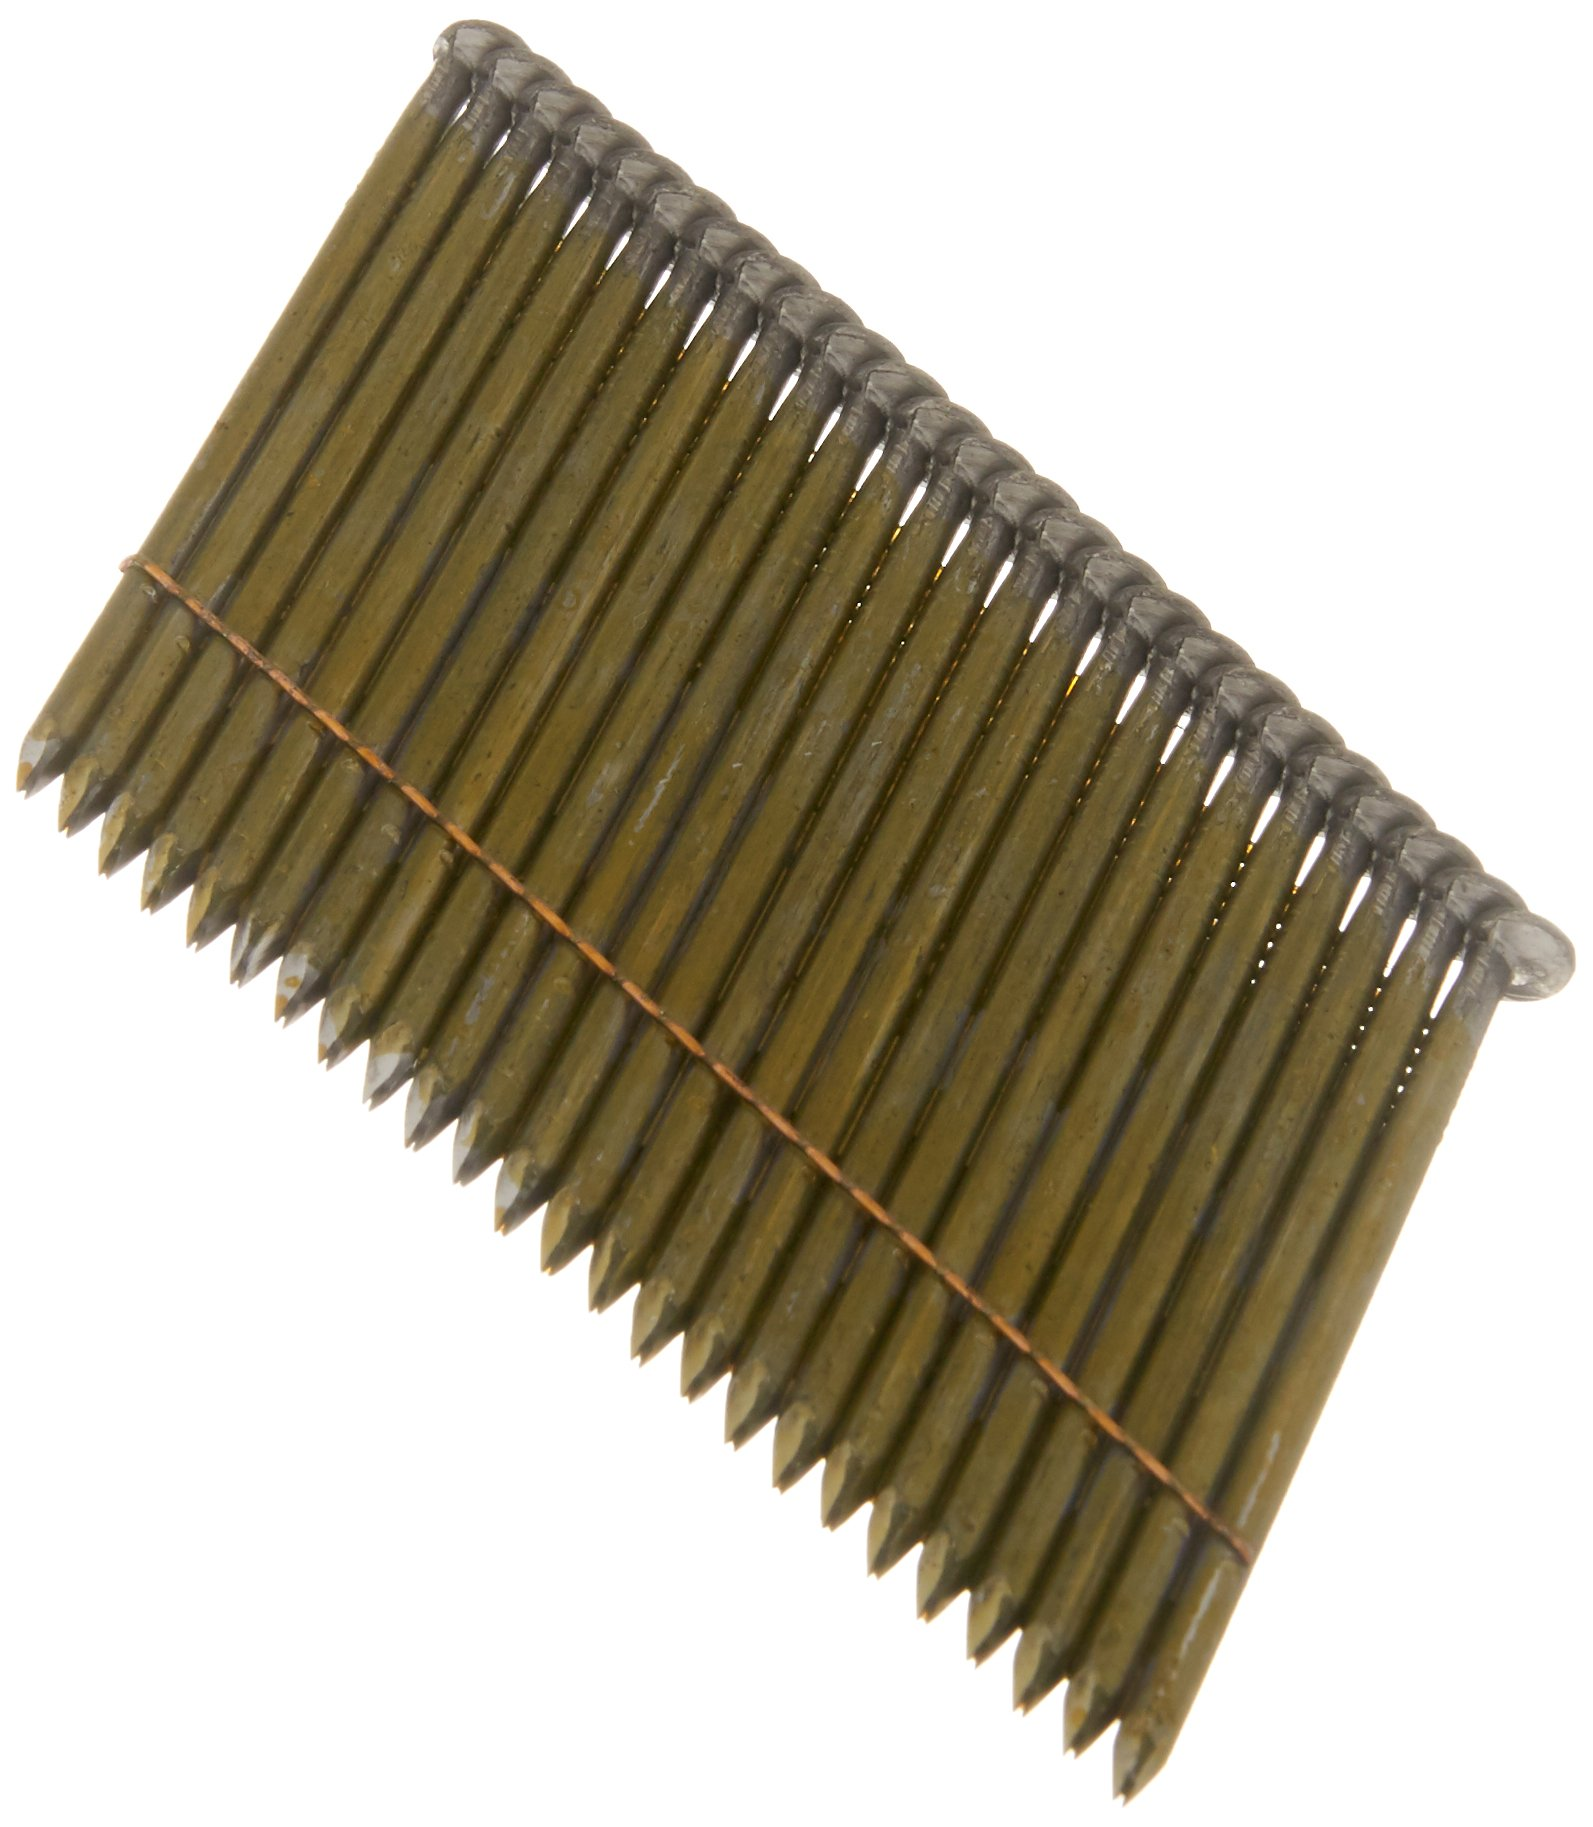 BOSTITCH S8D-FH 28 Degree 2-3/8-Inch by .120-Inch Wire Weld Framing Nails (2,000 per Box)